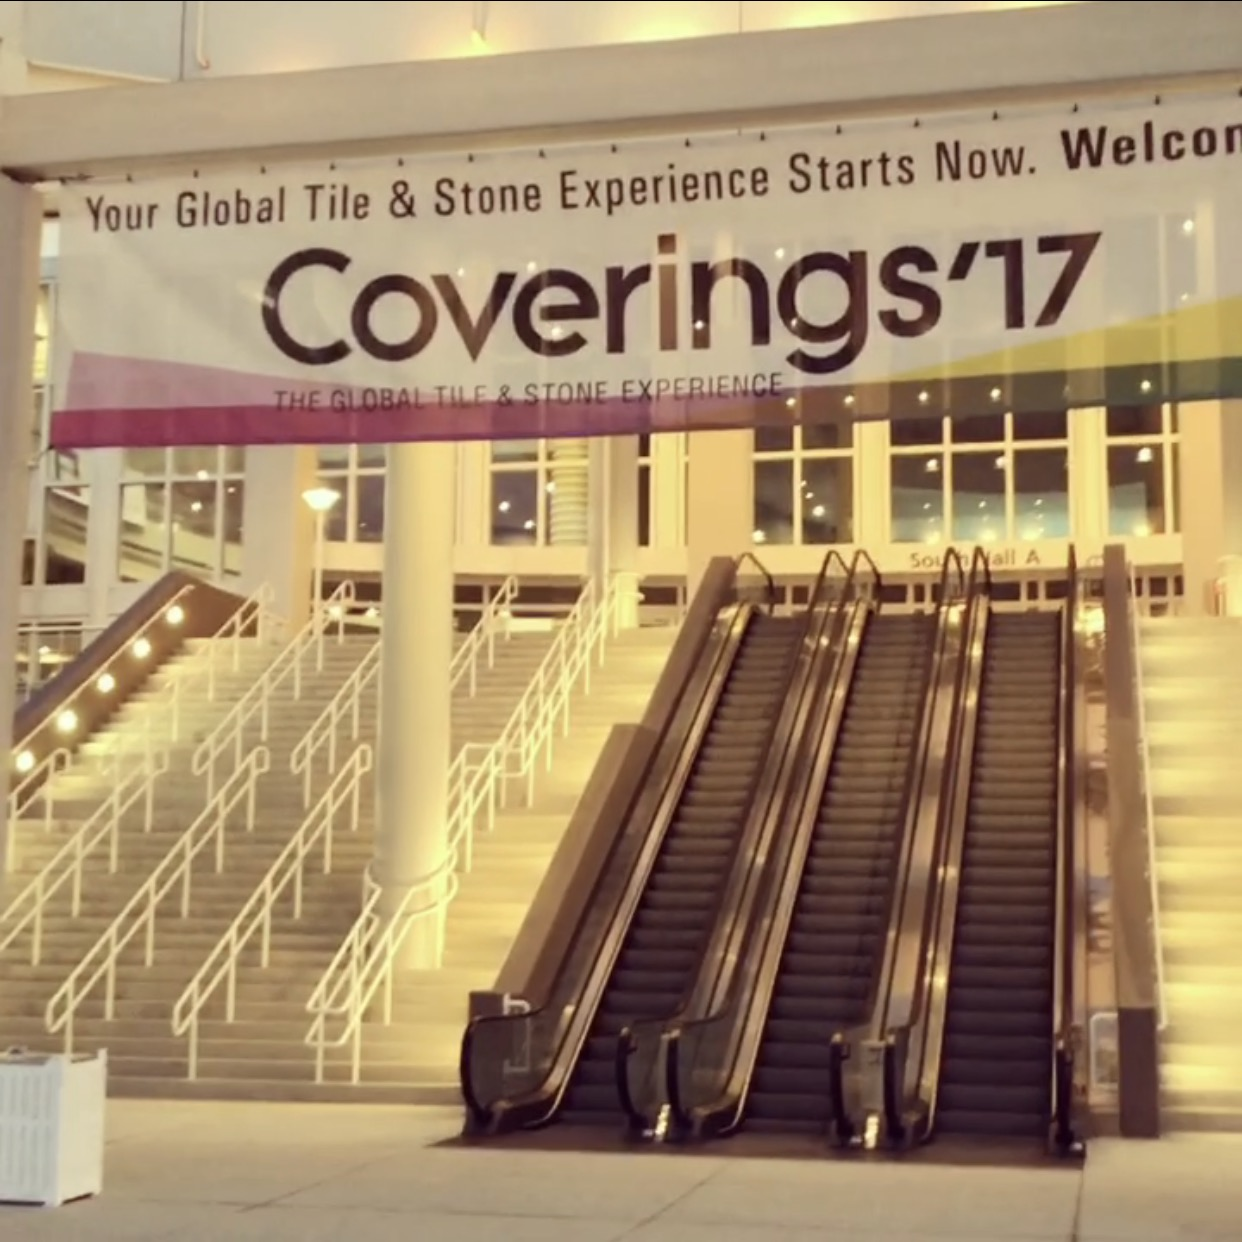 Coverings Orlando 2017 Tile & Stone Show - Entrance